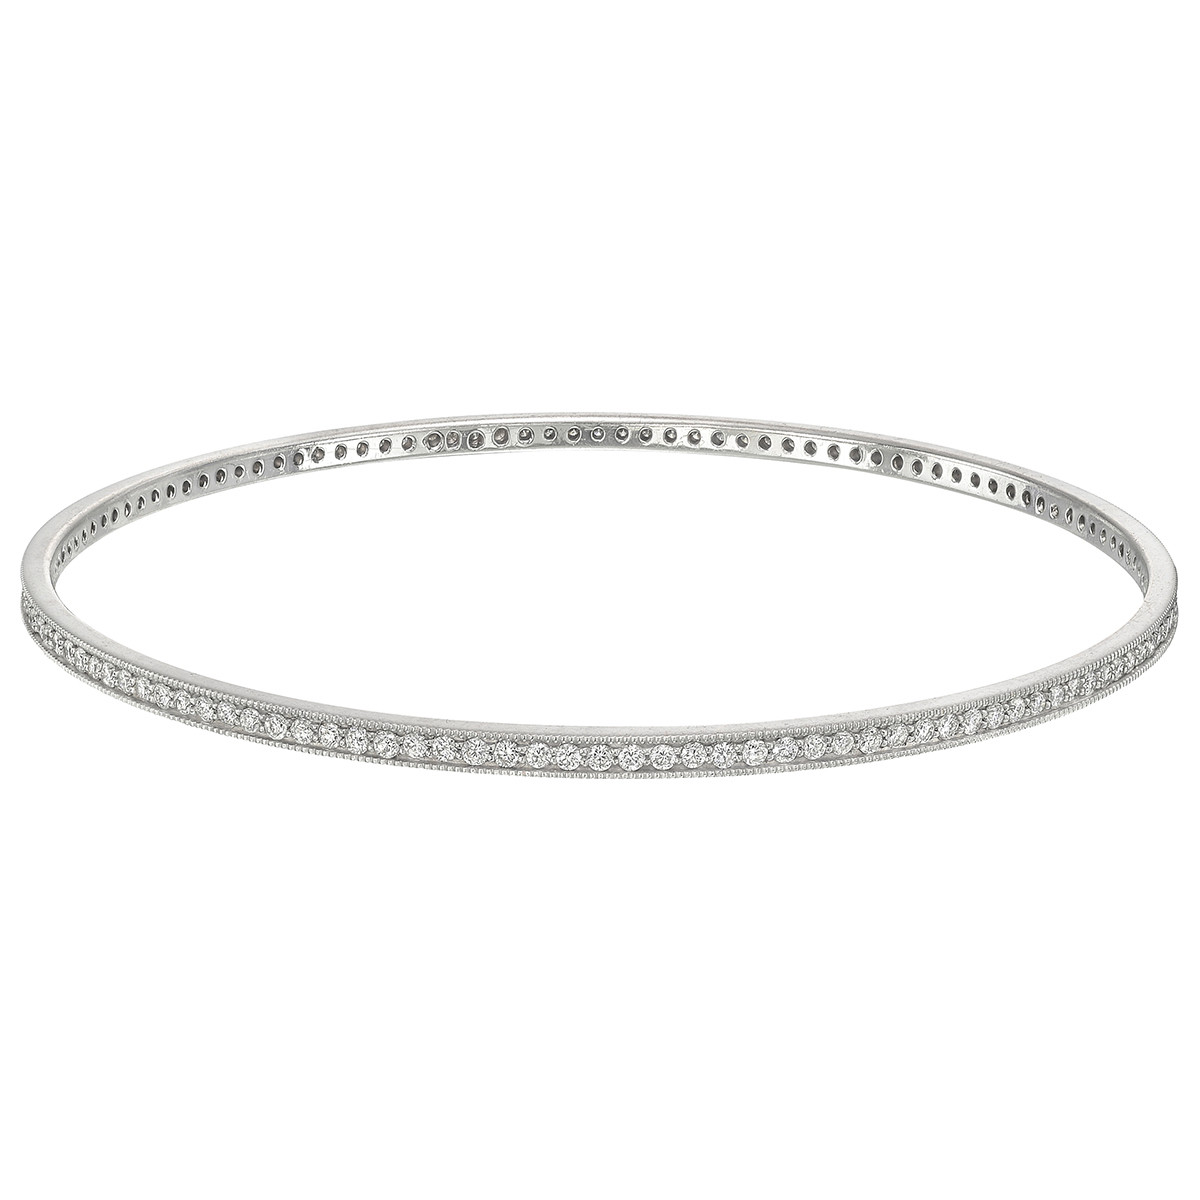 18k White Gold & Diamond Bangle (~2 ct tw)